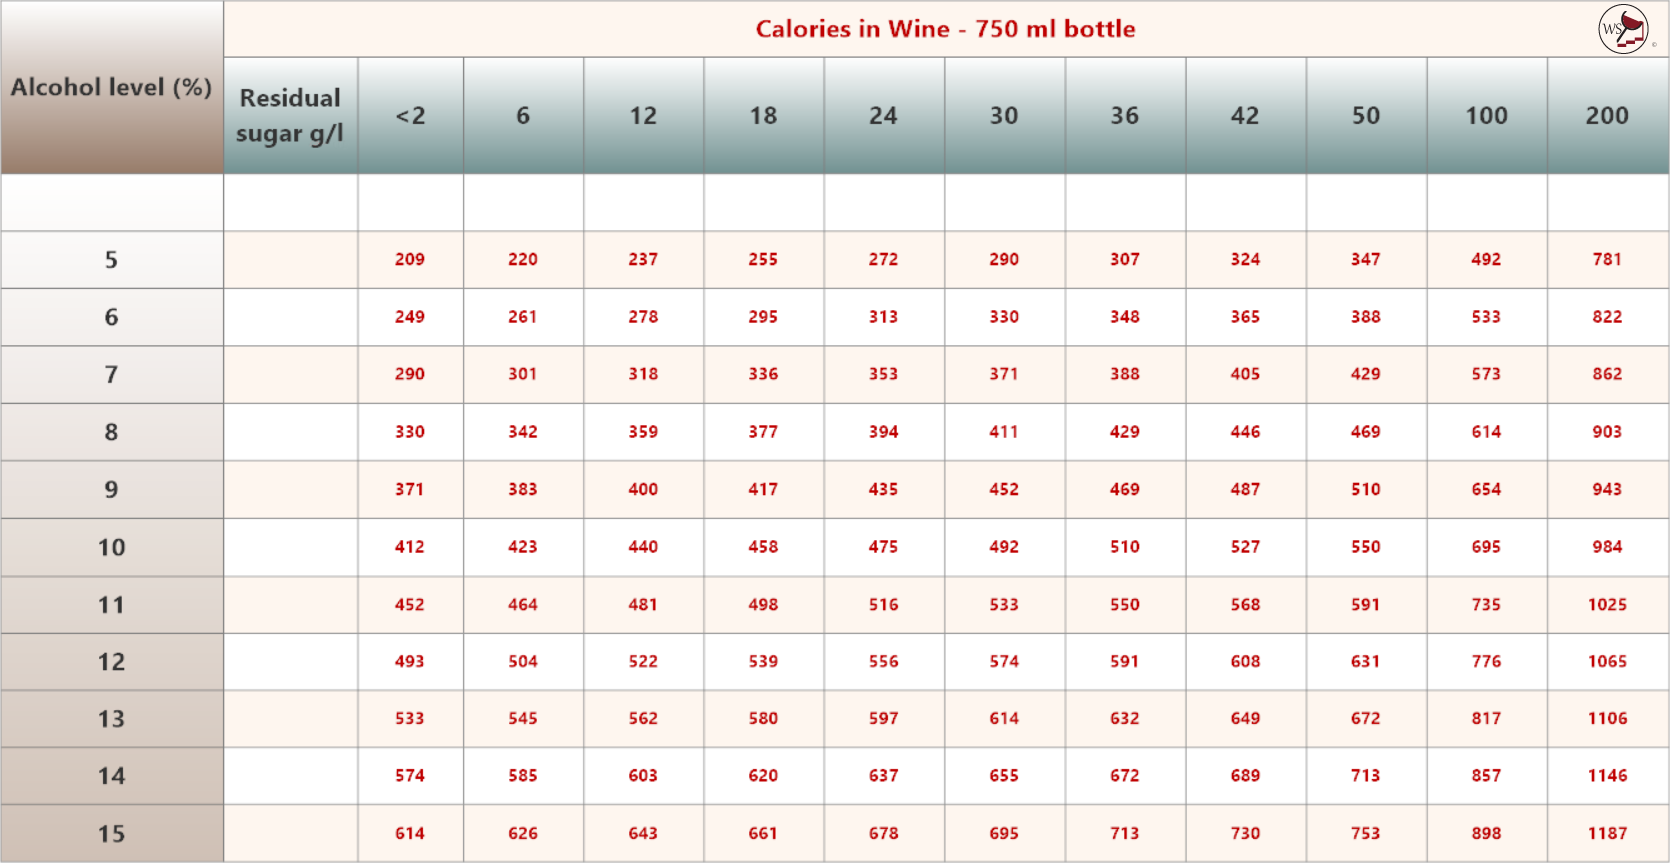 Table showing the calories in 750ml bottles of wine.